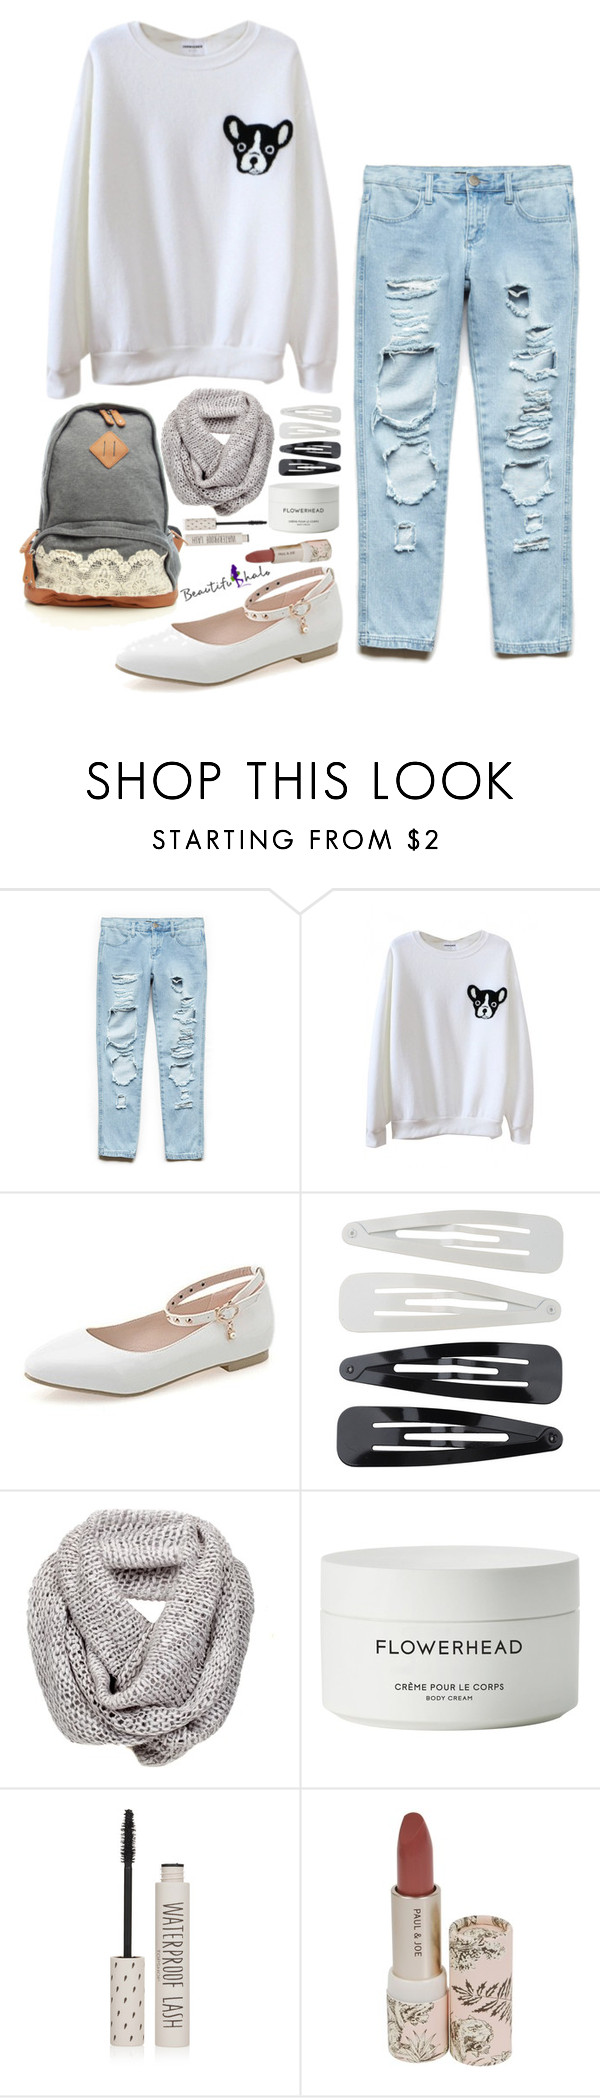 """""""Untitled #2138"""" by wh0s-that-grrrl ❤ liked on Polyvore featuring Forever 21, Byredo and Topshop"""